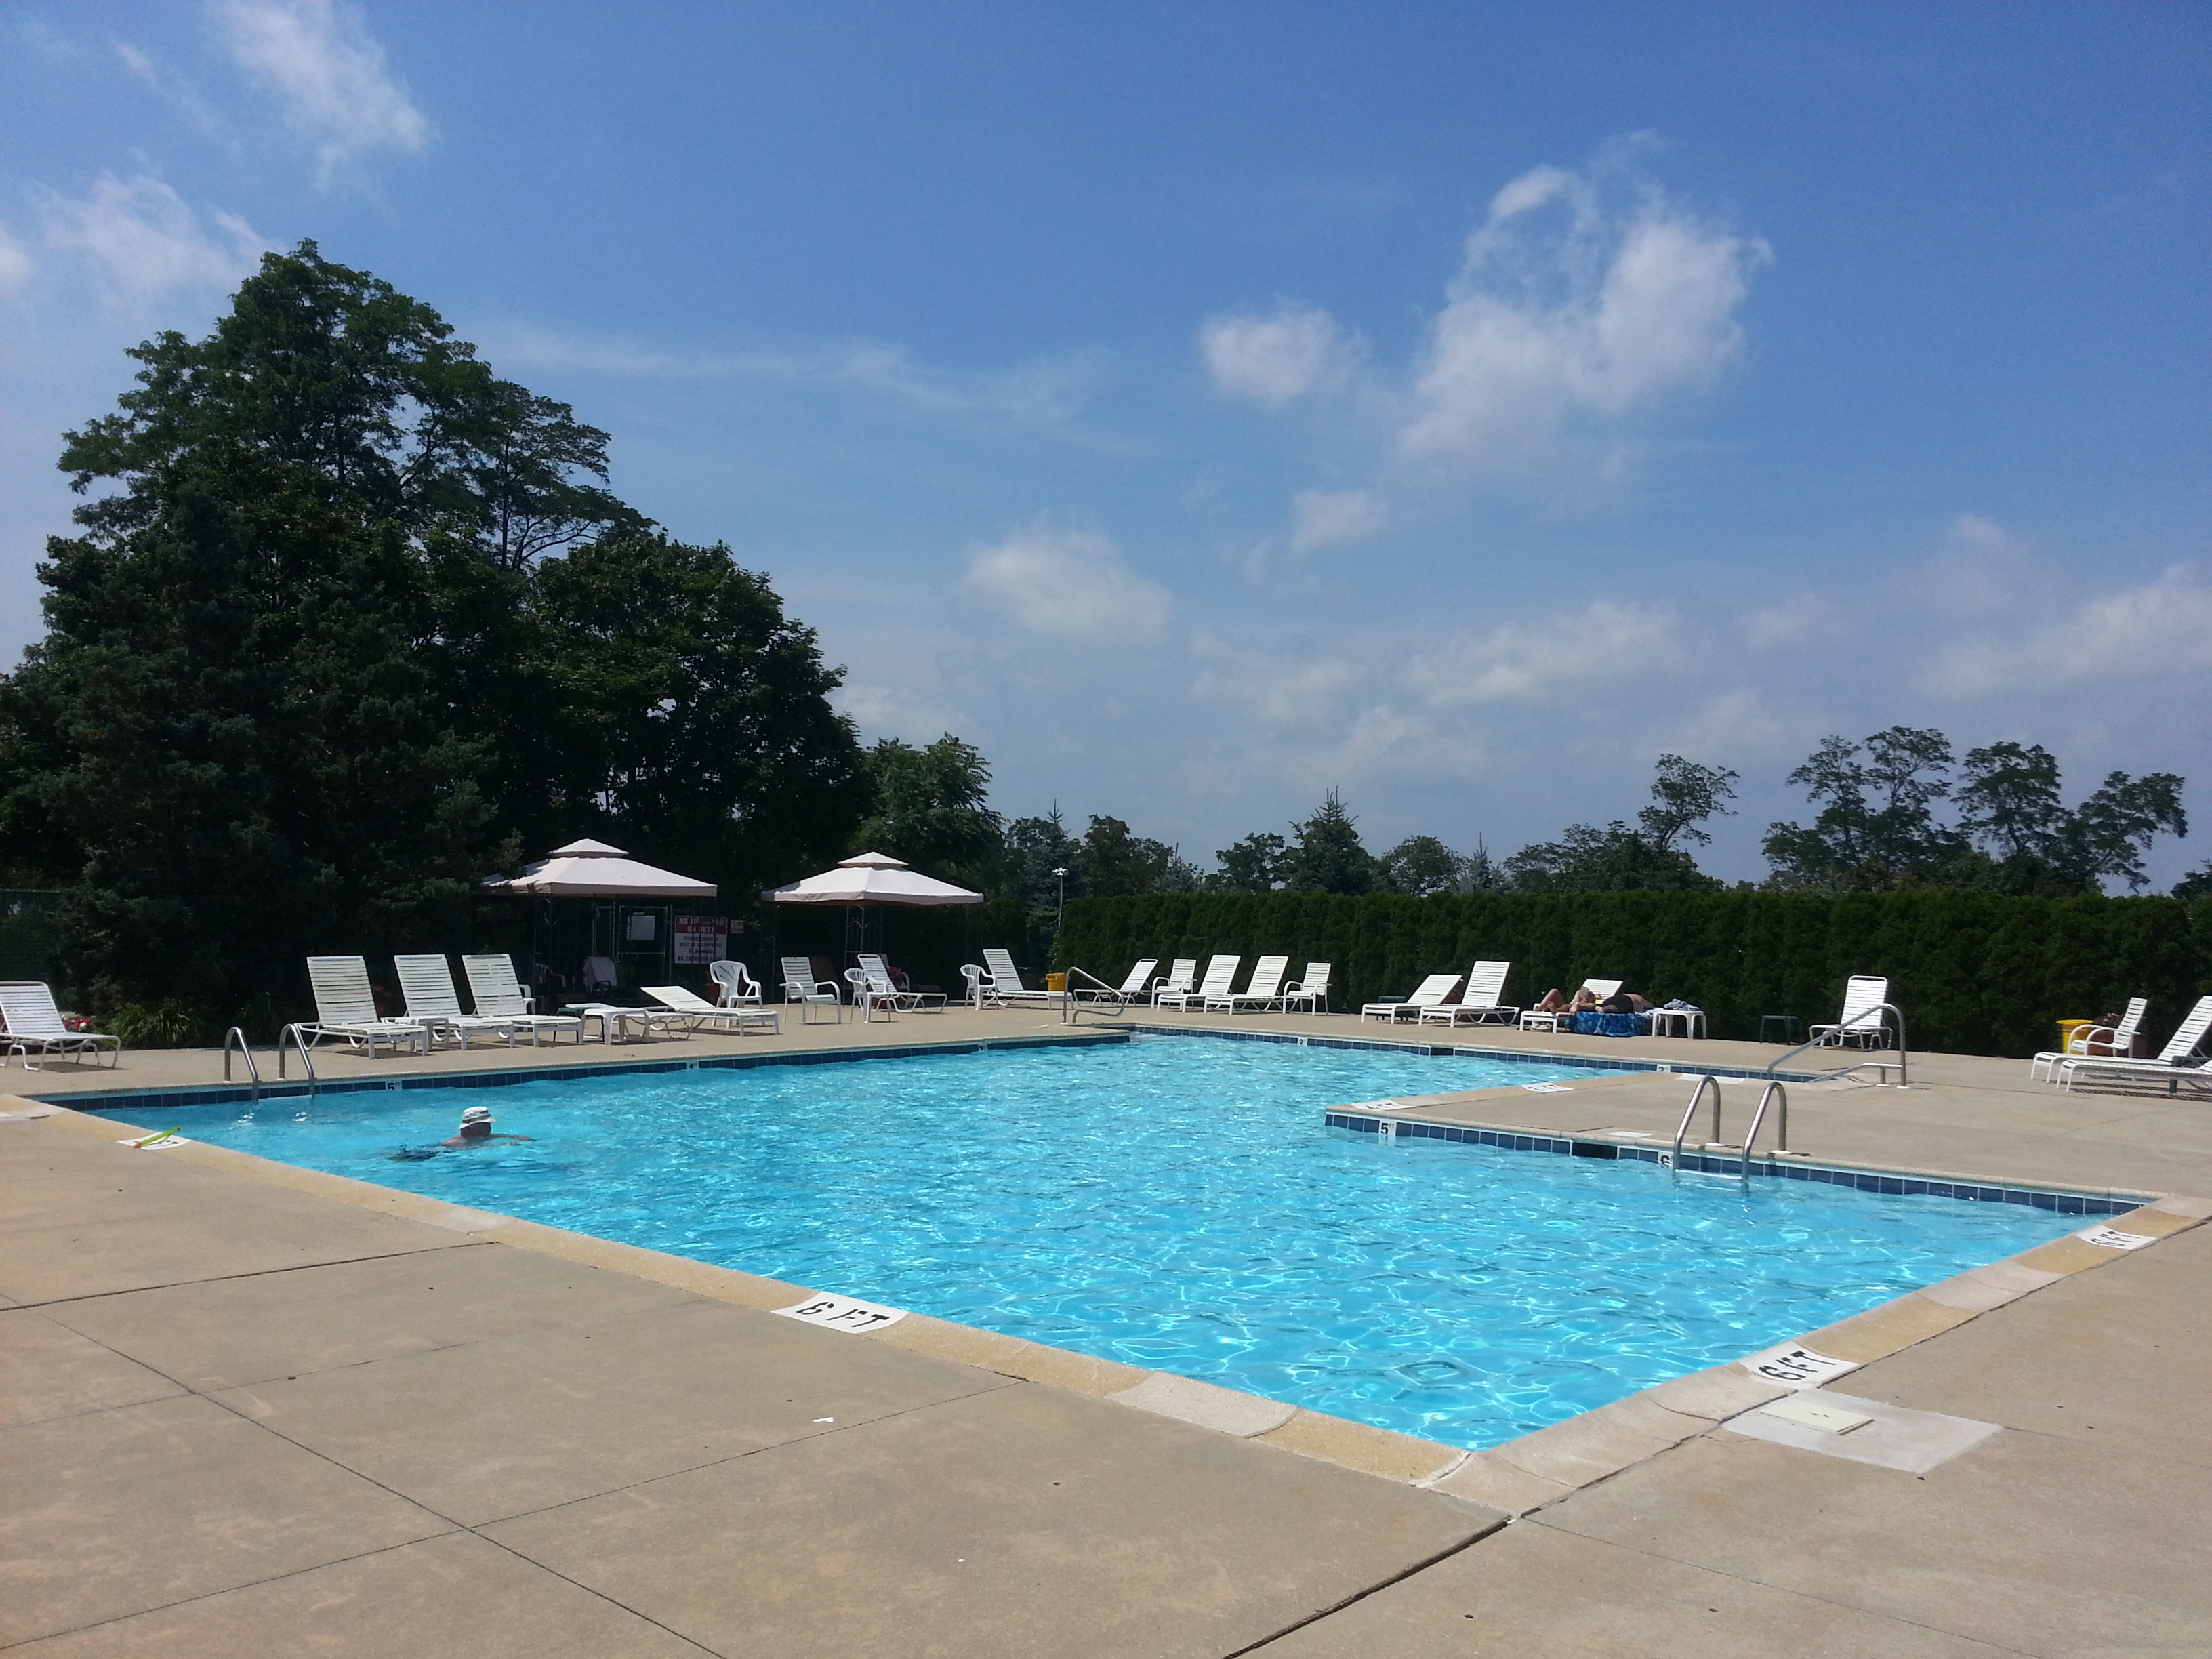 Located in the center of the community, this sparkling pool is one of the amenities at Tower Hill.